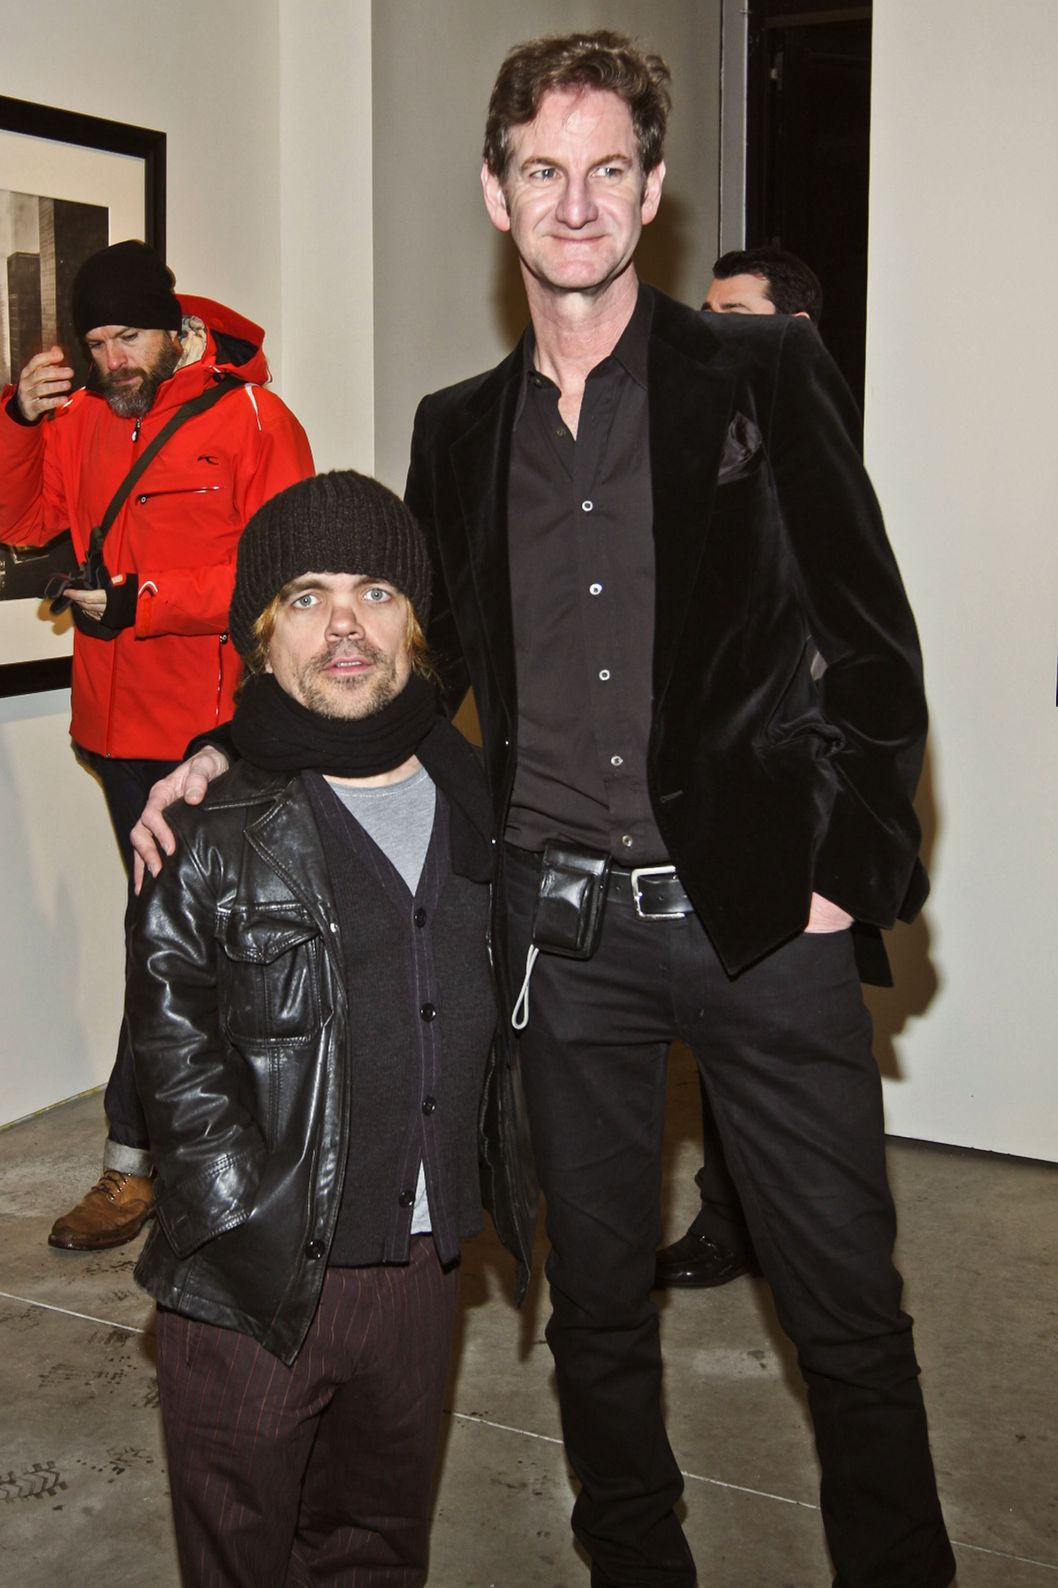 Mark Seliger, Peter Dinklage==STEVEN KASHER ANNOUNCES MARK SELIGER: LISTEN, An Exhibition by Acclaimed Contemporary Photographer, Mark Seliger==Steven Kasher Gallery, 521 West 23rd Street, NYC==January 27, 2011.